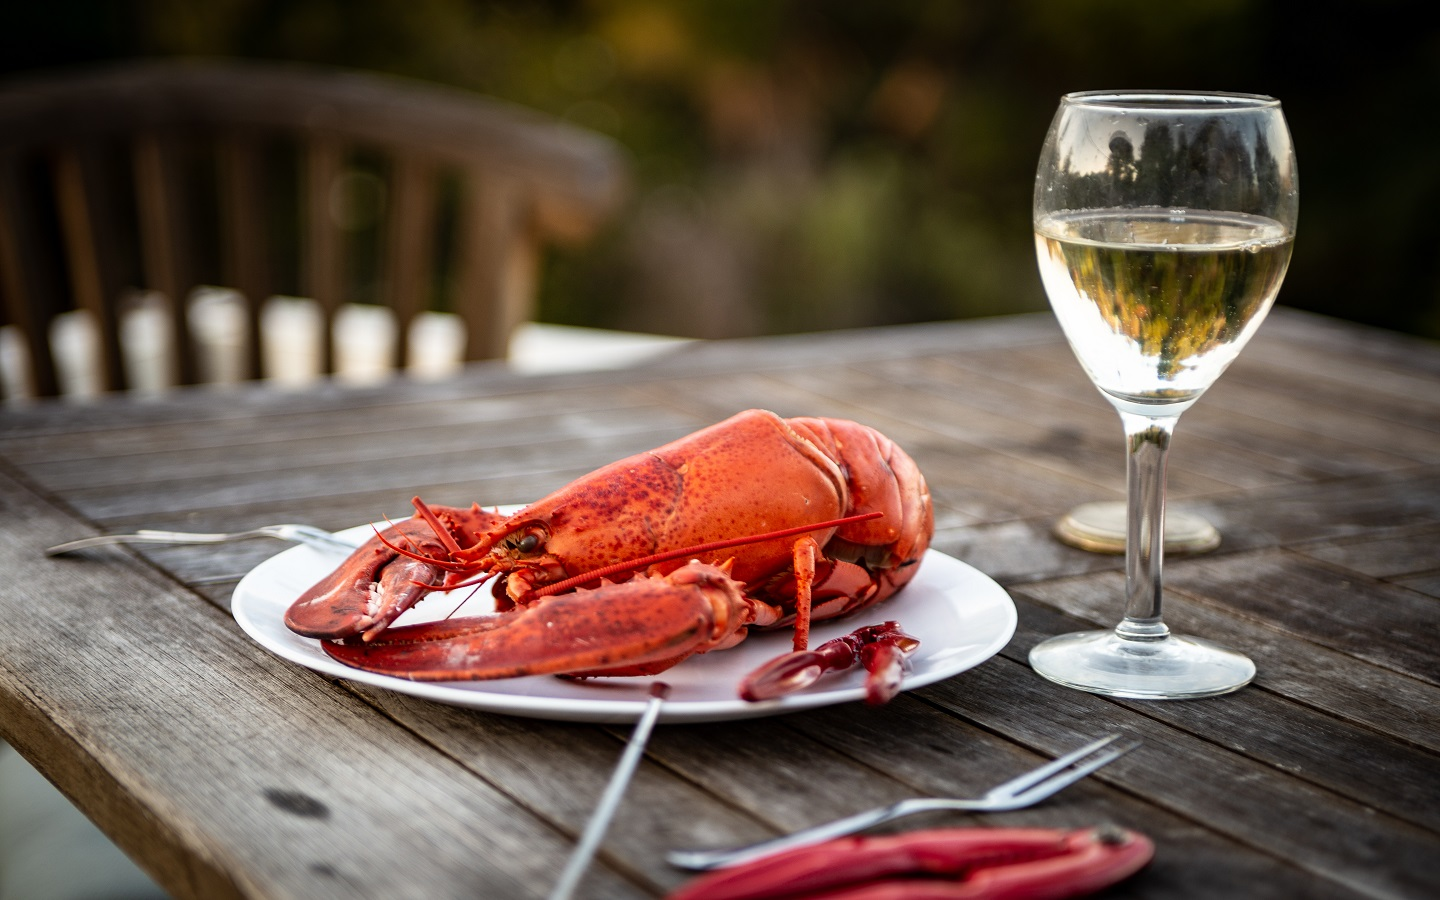 Lobster dinner in a plate